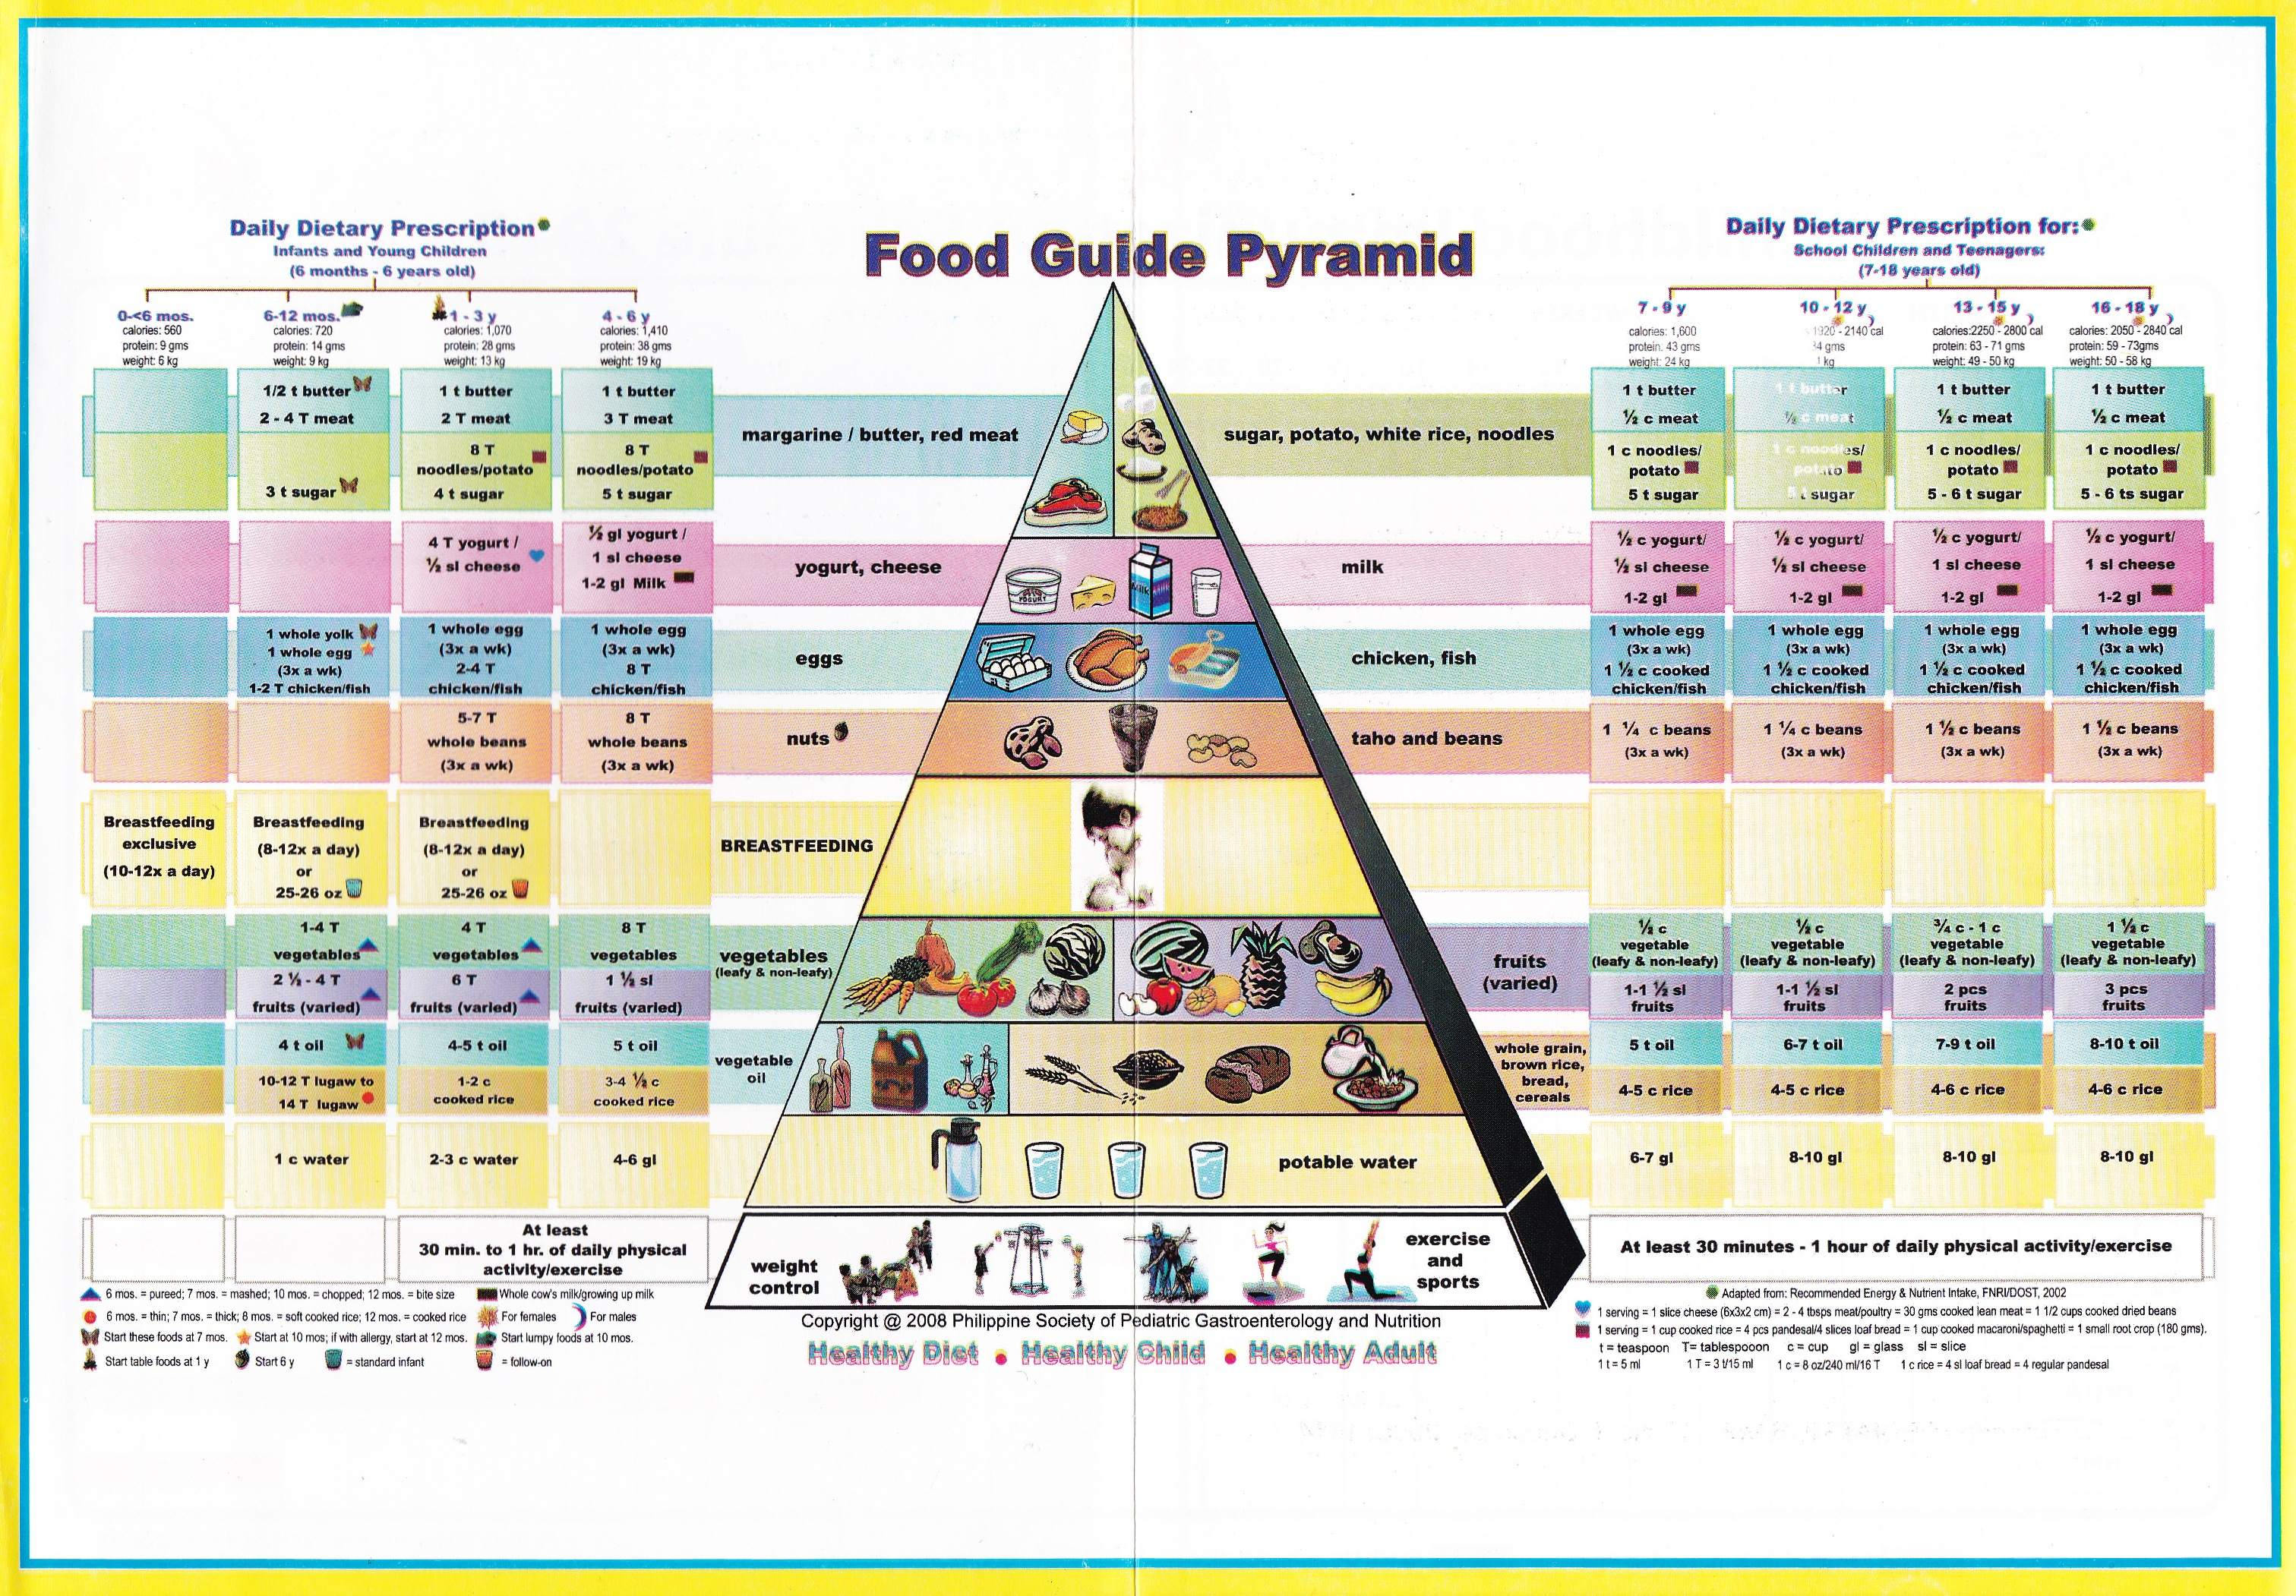 new food pyramid diagram how to wire a dimmer switch adult guide porno photo